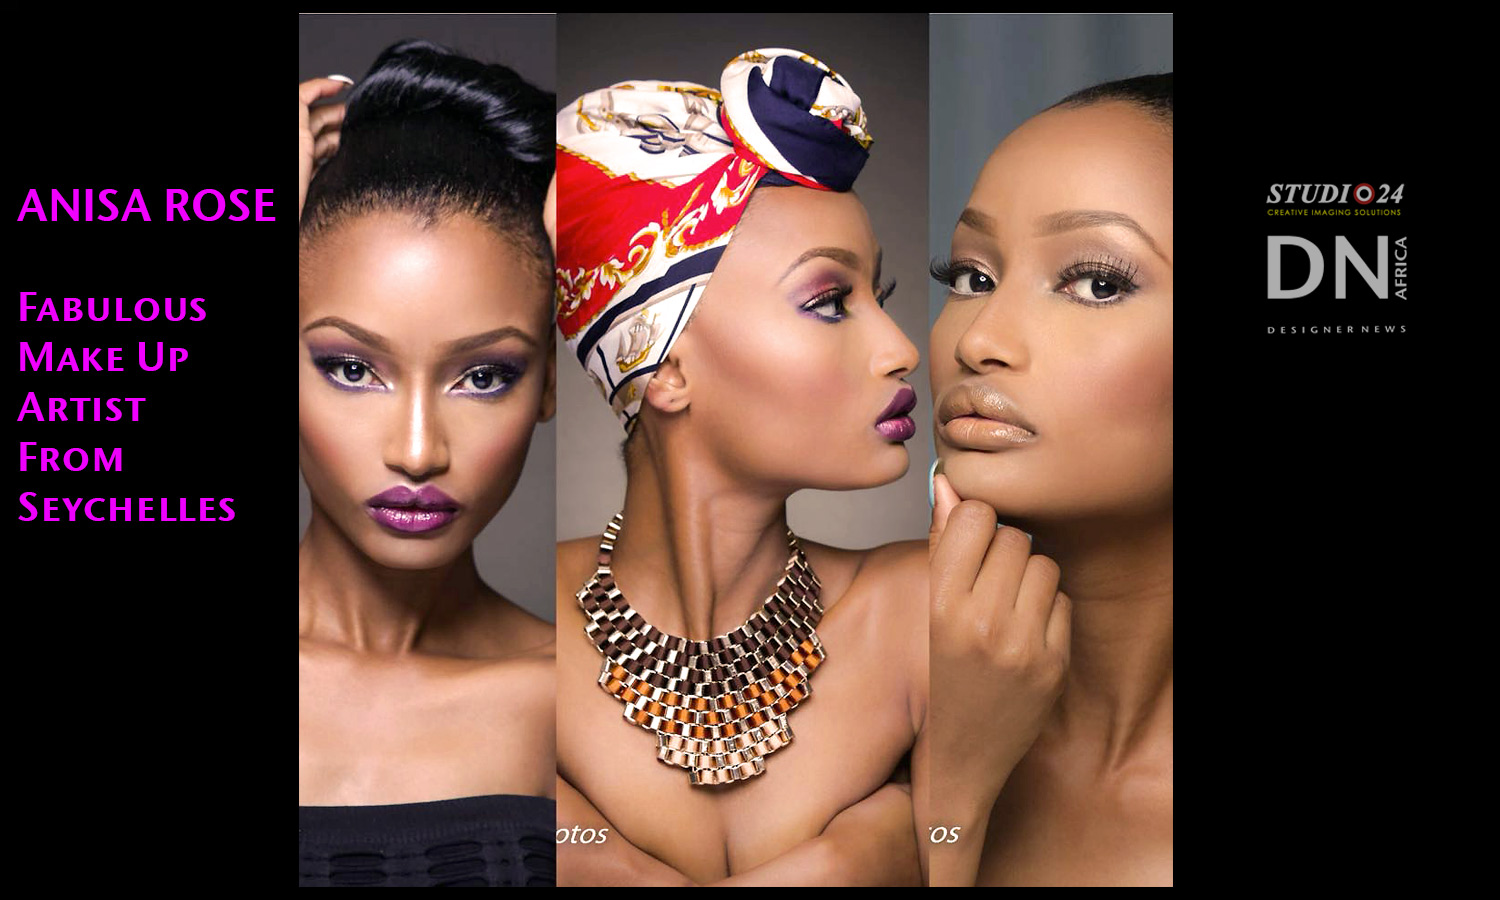 AFRICAN FASHION STYLE MAGAZINE - ANISA ROSE MAKE UP ARTIST FROM SEYCHELLES - Media Partner DN MAG, DN AFRICA -STUDIO 24 NIGERIA - STUDIO 24 INTERNATIONAL- Photographer Dan NGU